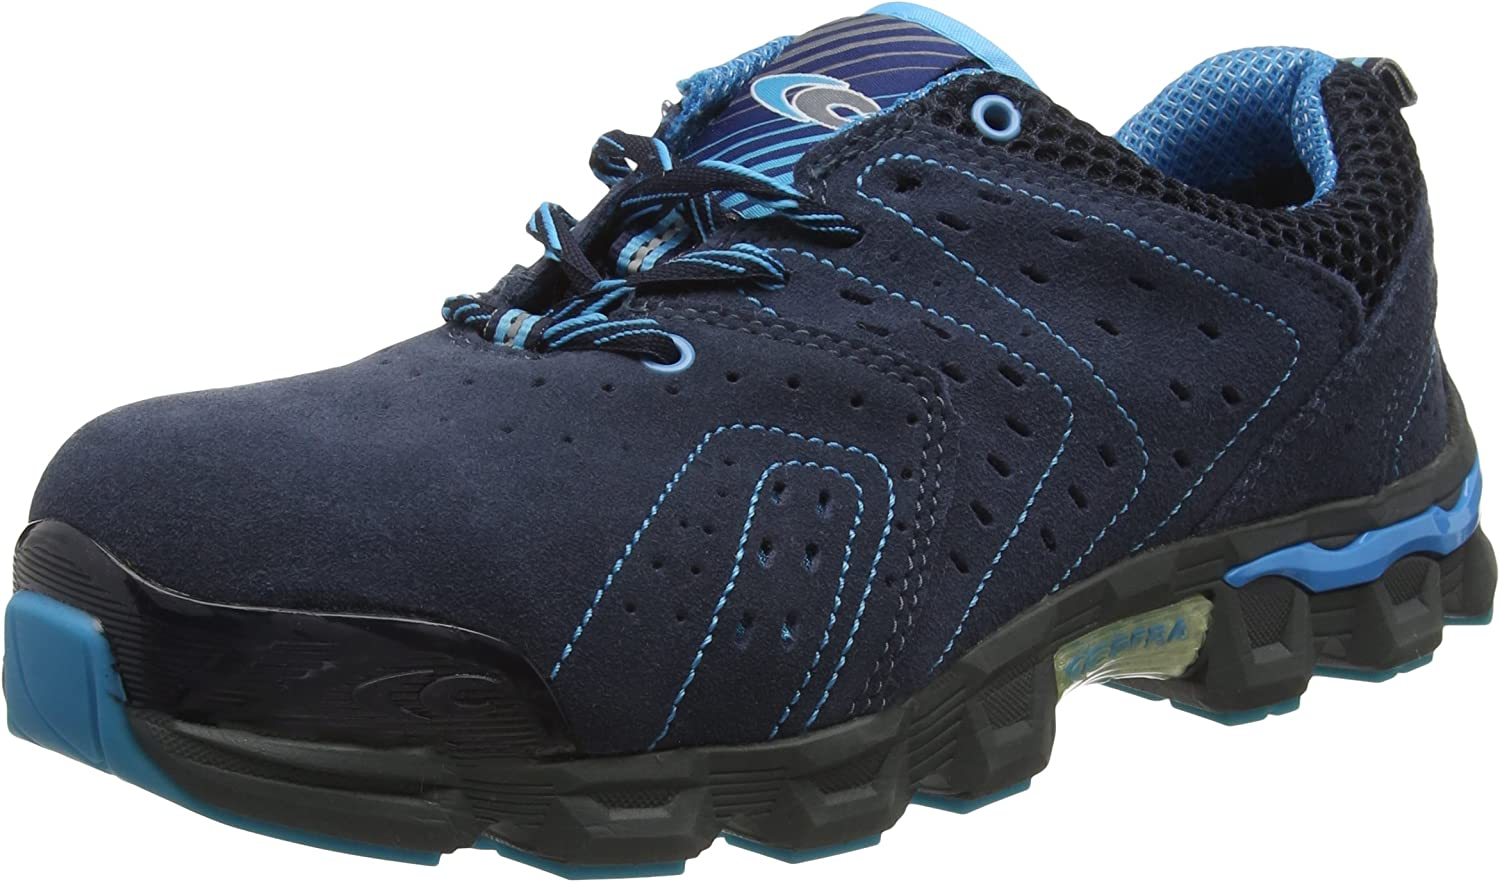 Cofra JE021-000.W40 Size 40 S1 P SRC Diving  Safety shoes - bluee